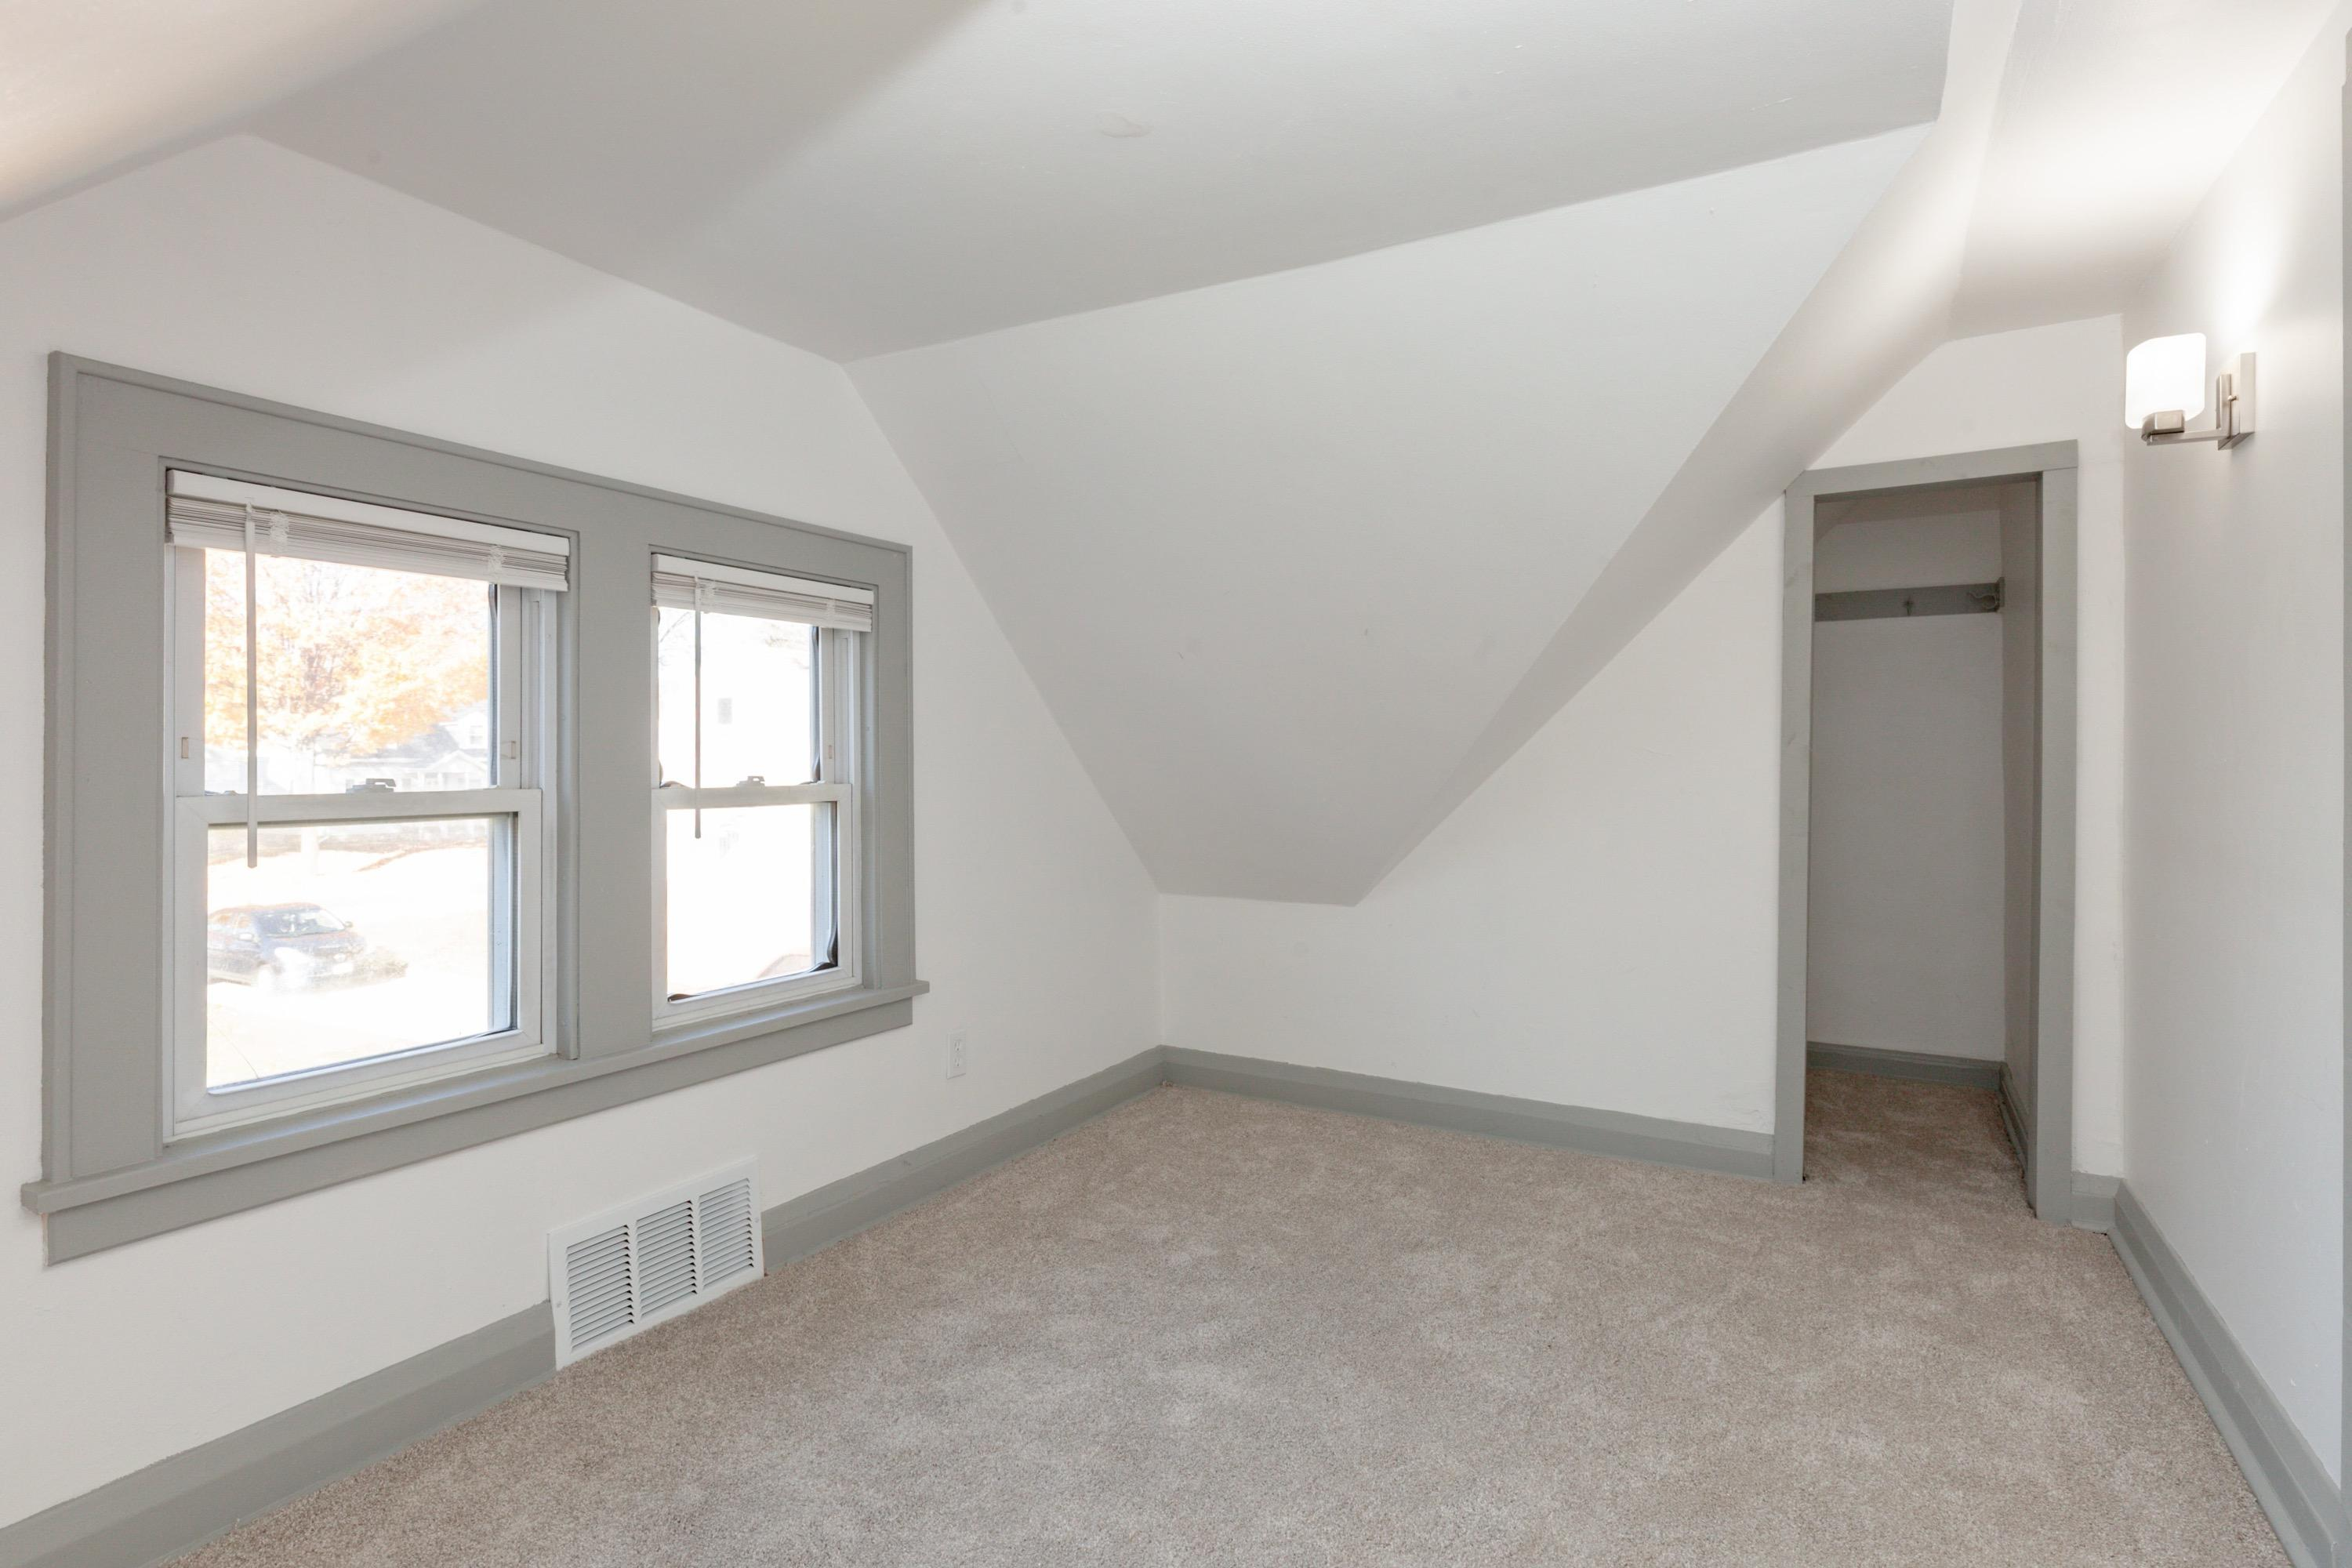 6012 37th St, Milwaukee, Wisconsin 53209, 3 Bedrooms Bedrooms, 5 Rooms Rooms,1 BathroomBathrooms,Single-family,For Sale,37th St,1721966